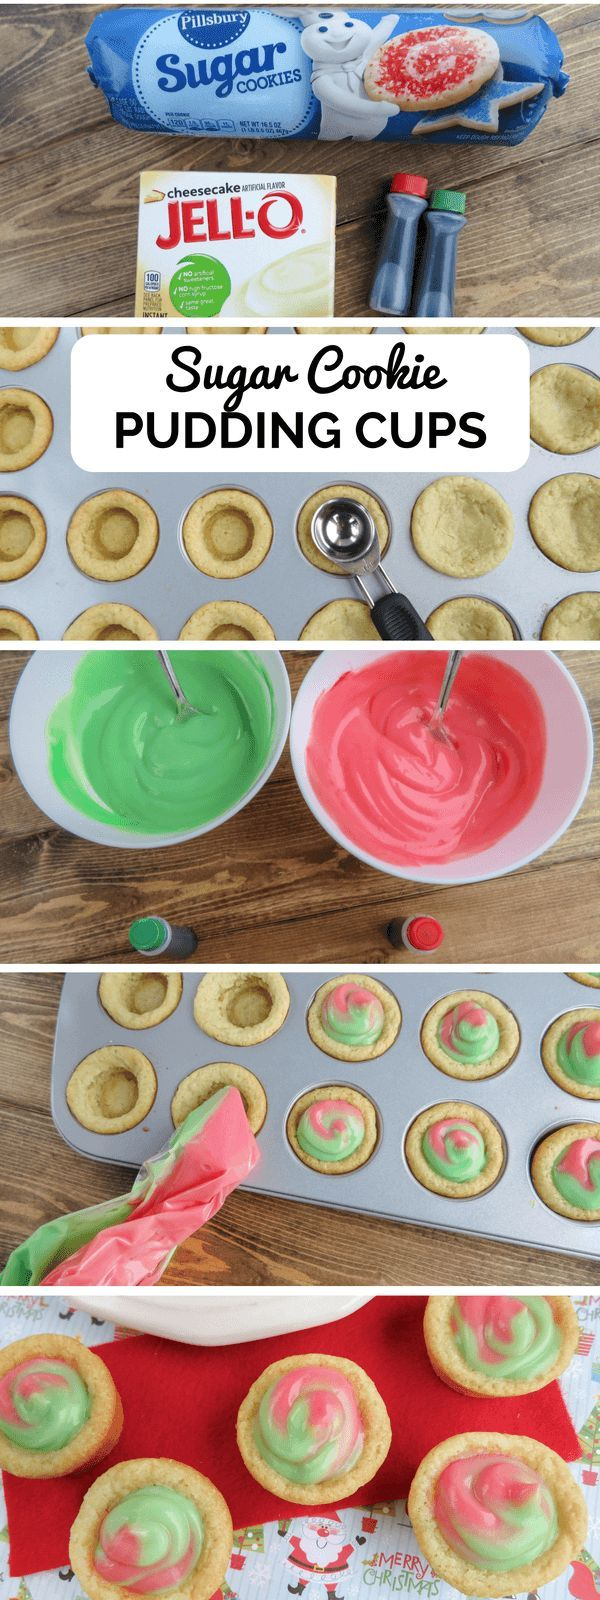 Because this recipe uses store-bought sugar cookie dough and pudding mix, everyone can make these cute little sugar cookie pudding cups with ease!